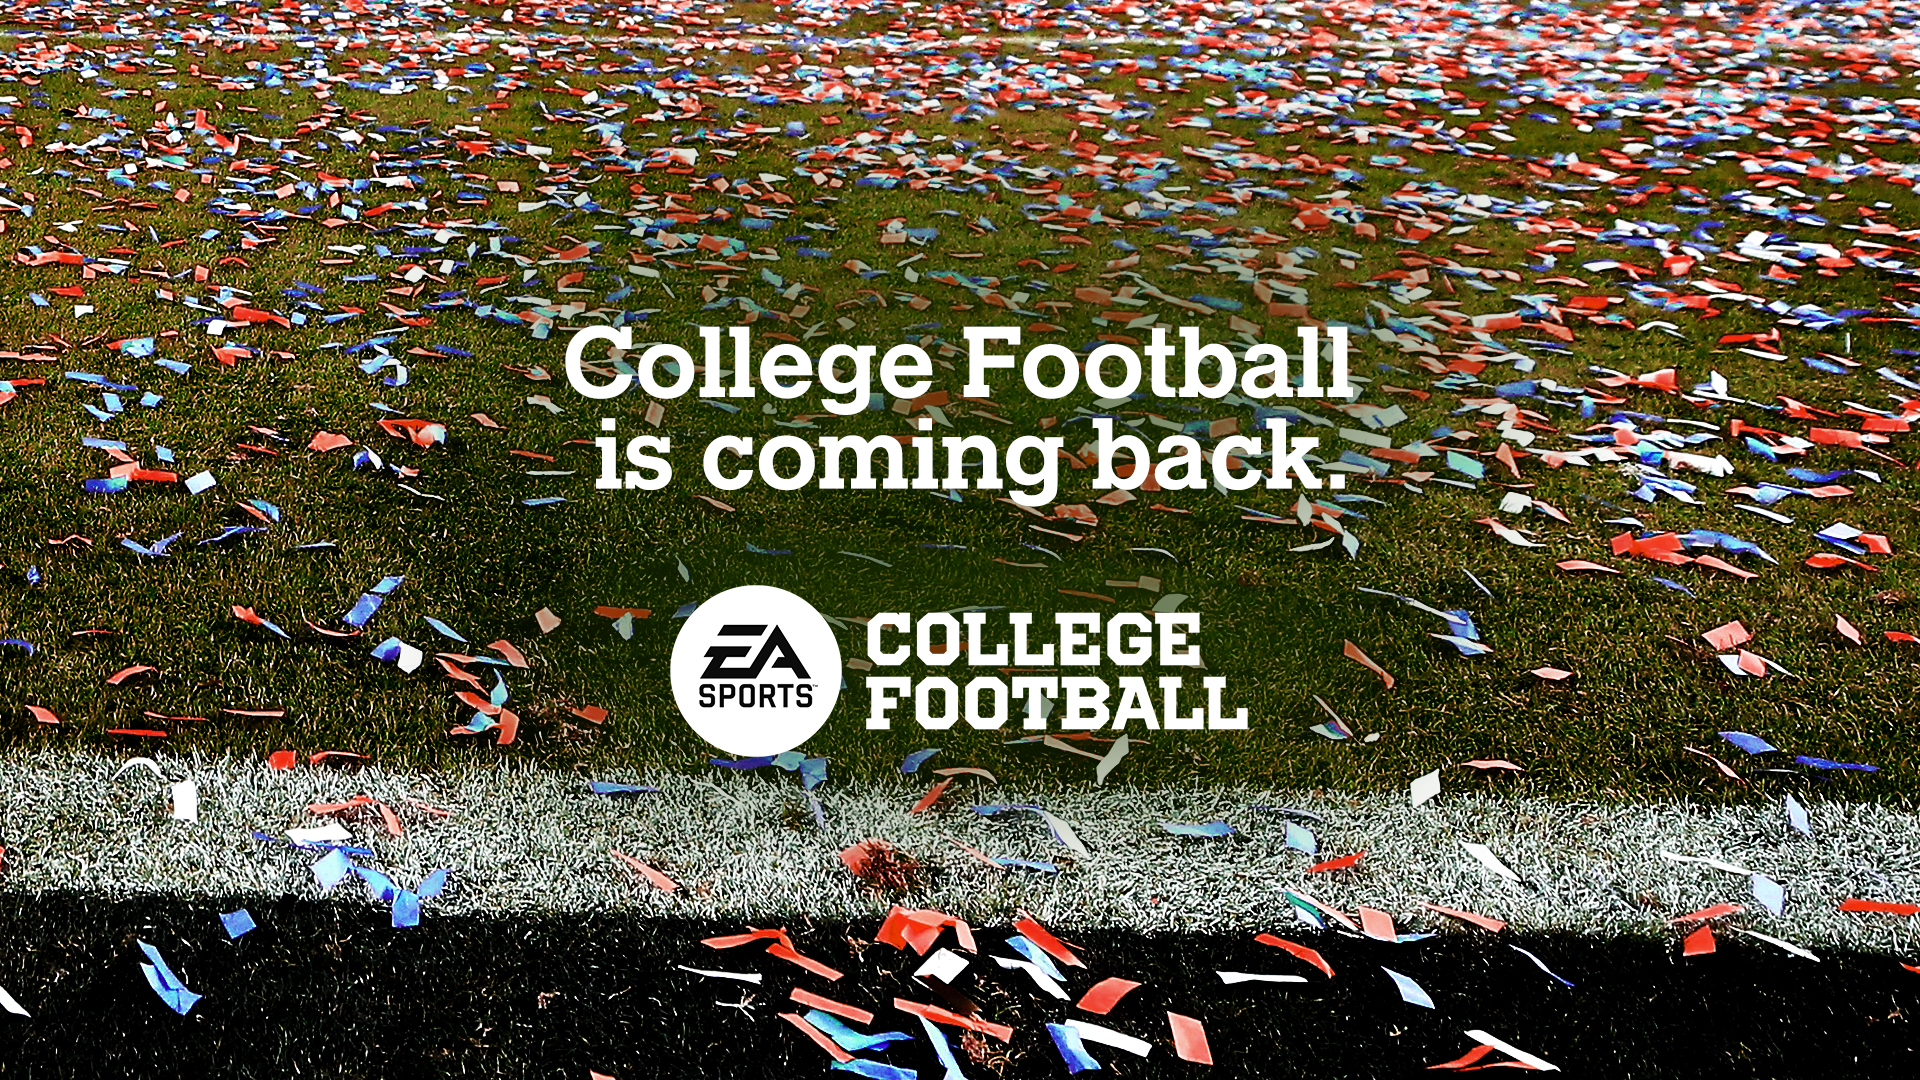 Twitter Reacts To EA Sports Bringing Back NCAA College Football Video Game